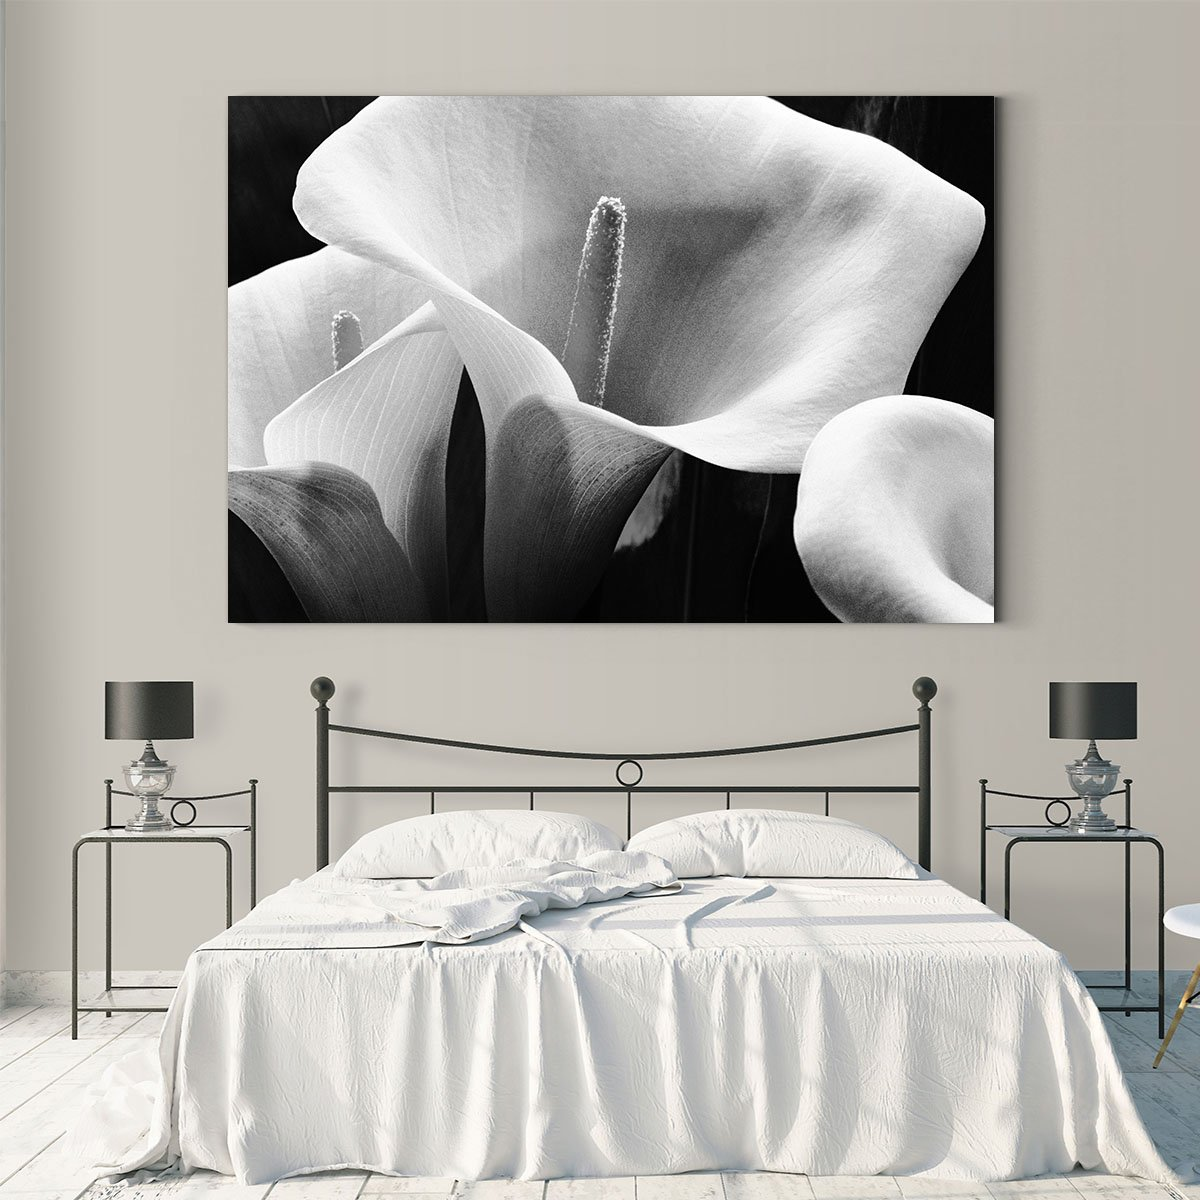 Blooming flowers still life decorative painting 001